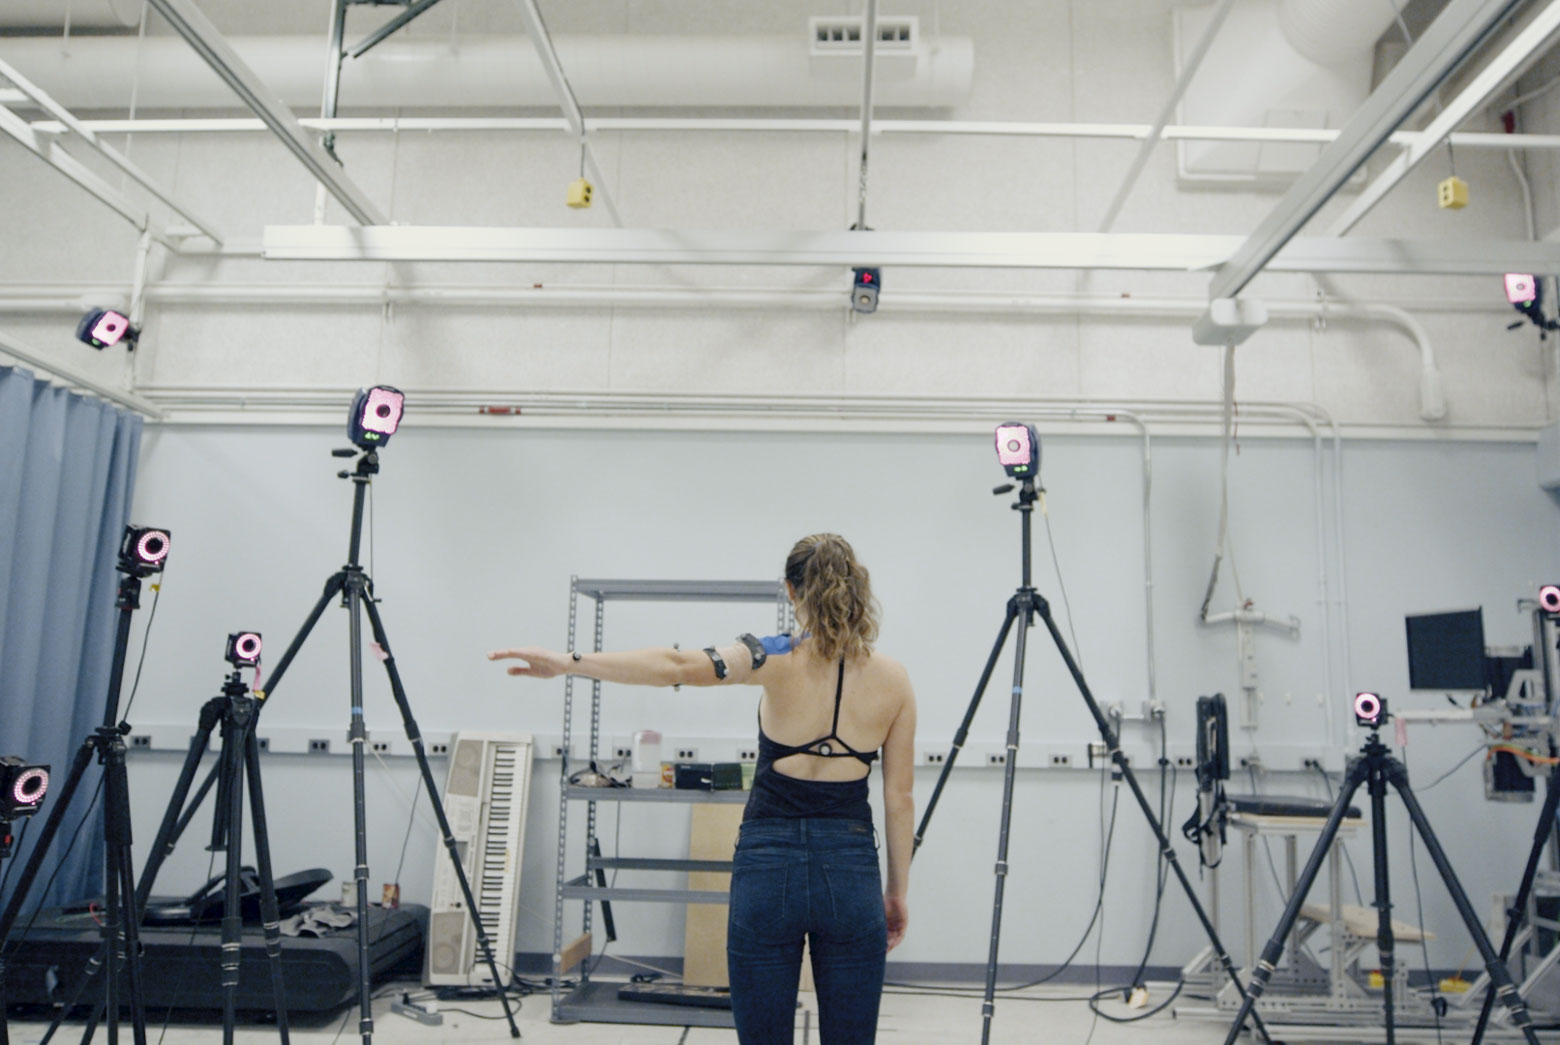 Woman stands in the middle of a room full of cameras, holding out her arm